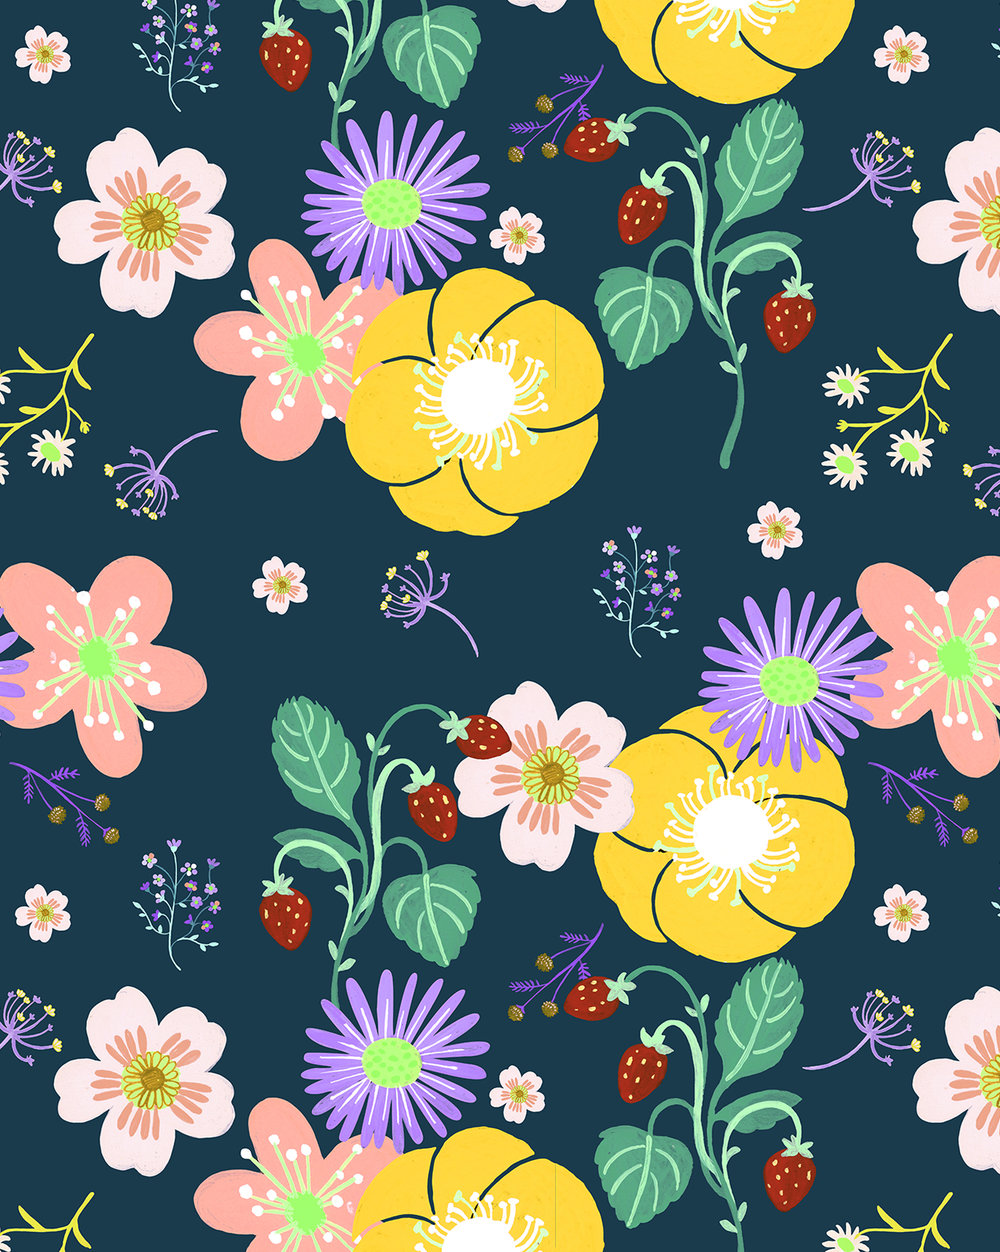 Pomme Chan_Meadow_Pattern_Flower2.jpg